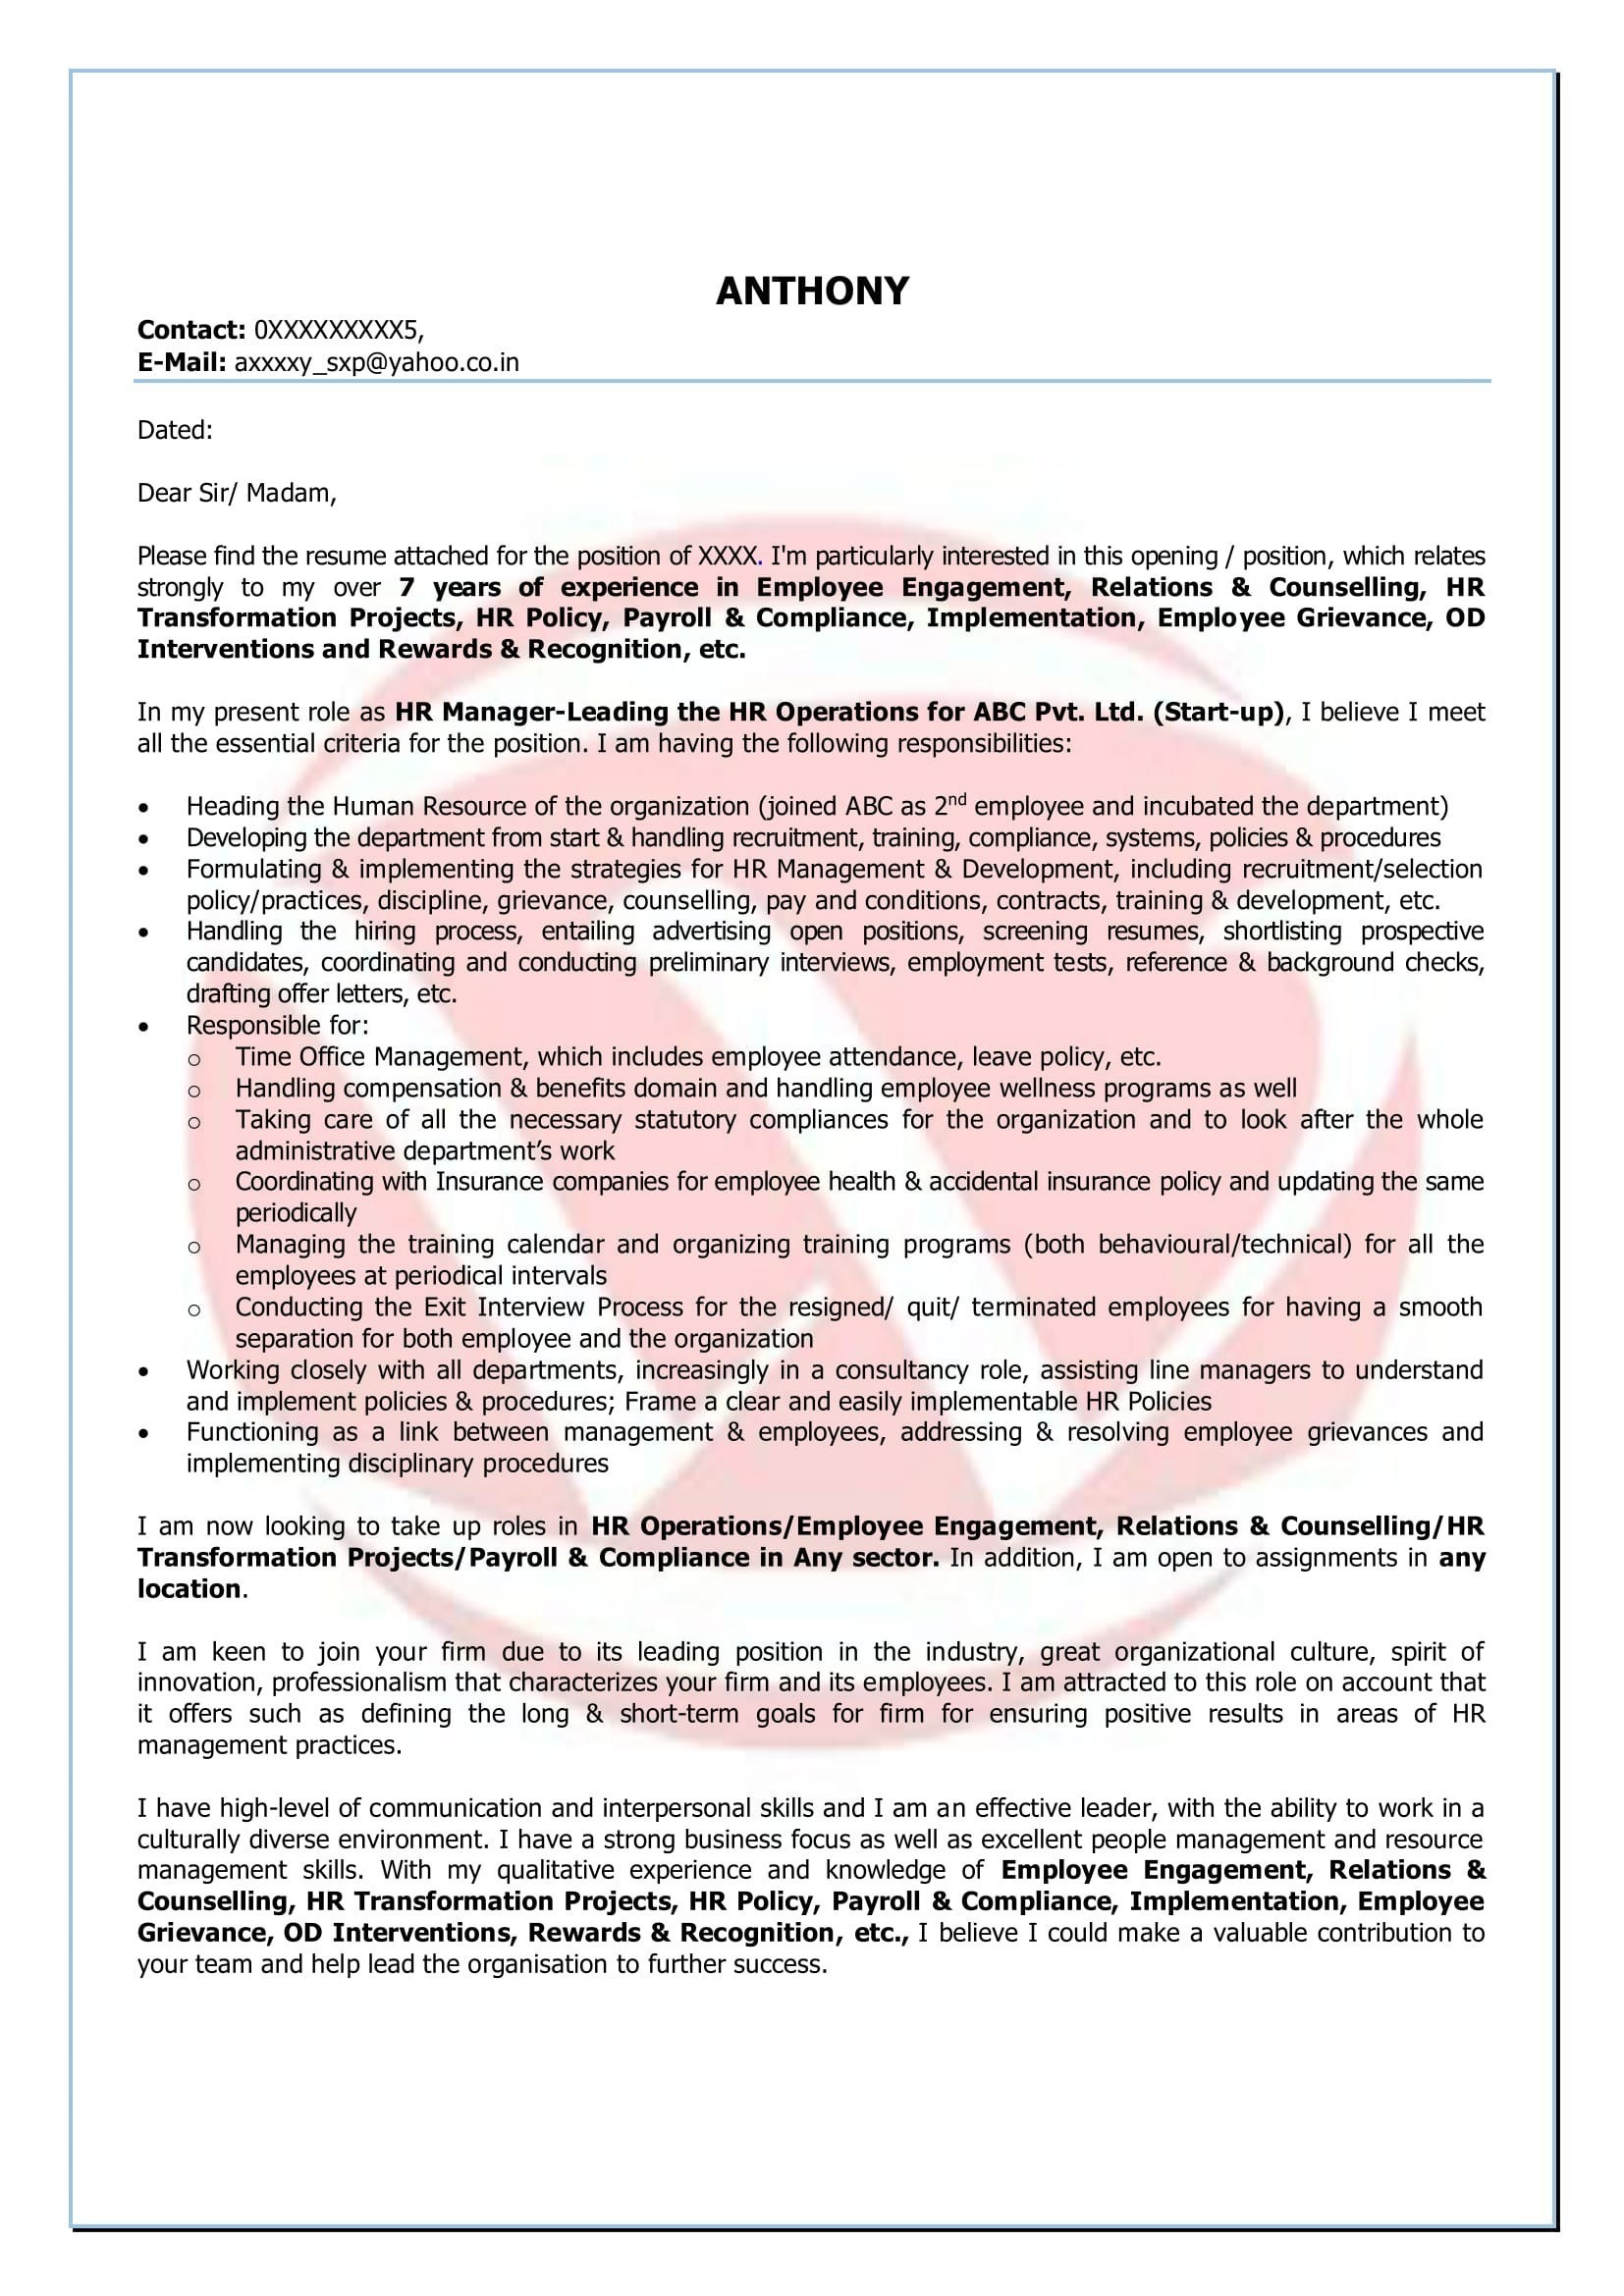 Sample Letter Of Disagreement Template - Grievance Appeal Letter Template